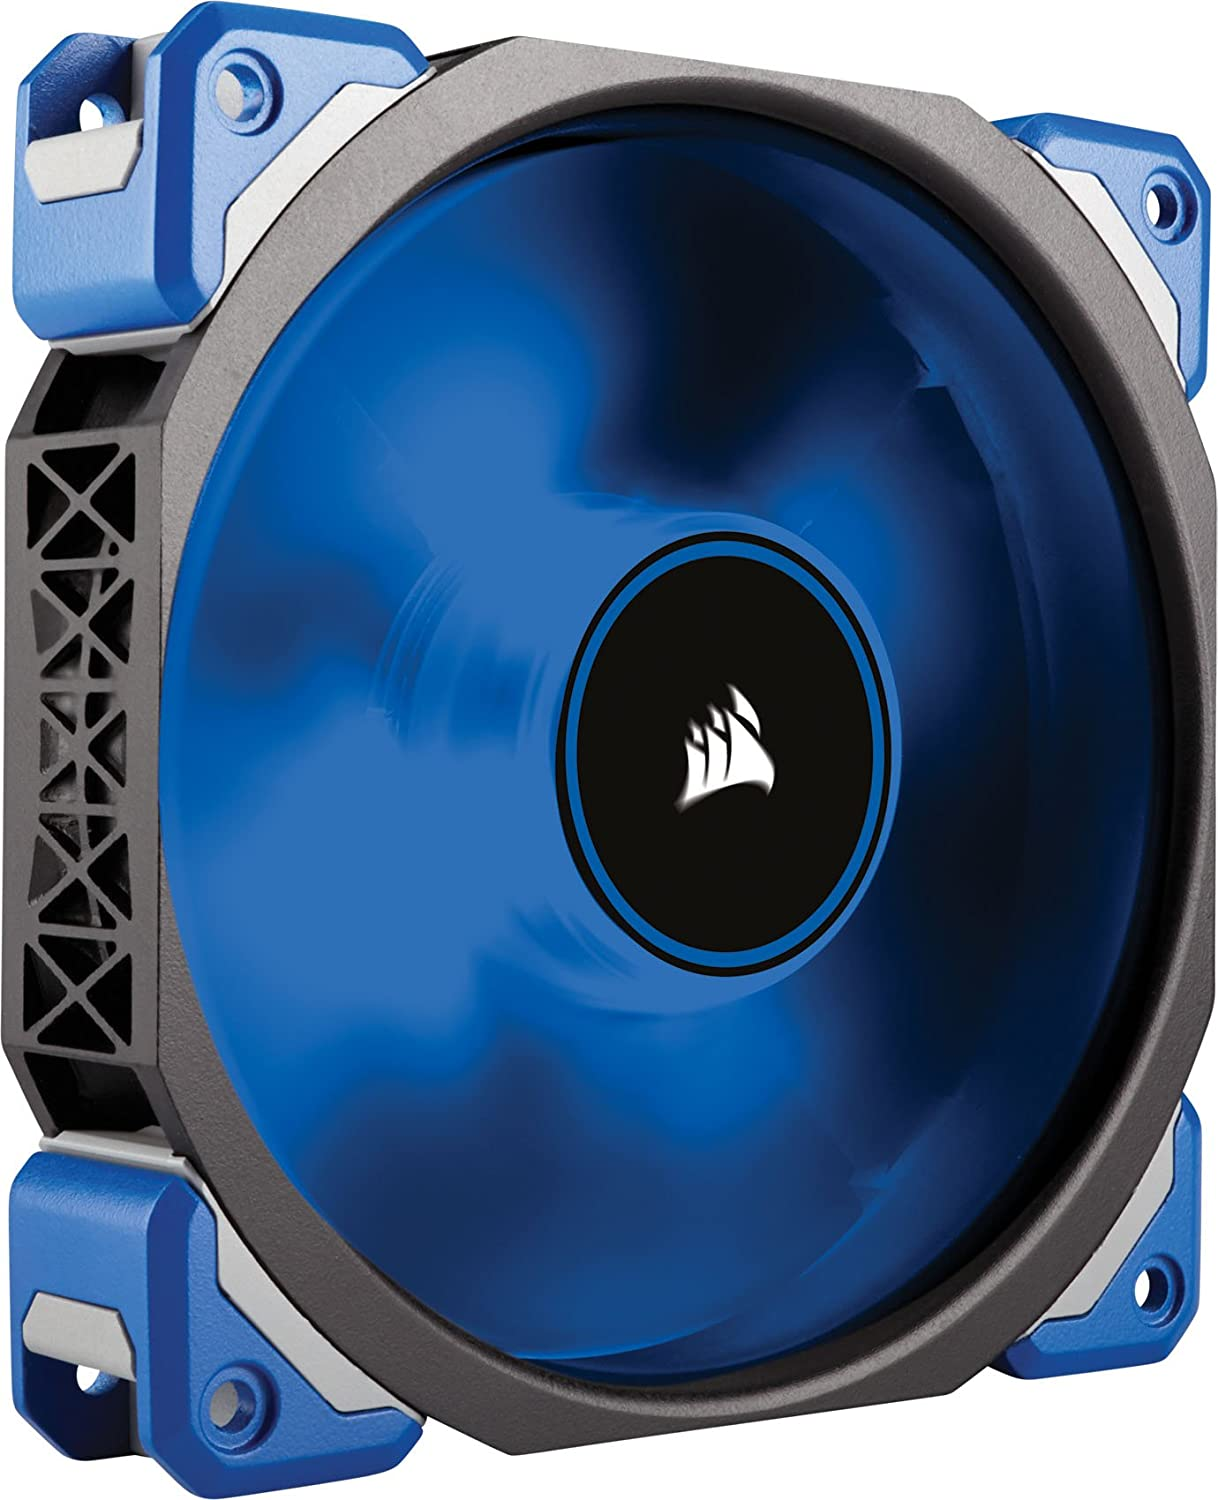 Corsair ML120 Pro LED, Blue, 120mm Premium Magnetic Levitation Cooling Fan CO-9050043-WW